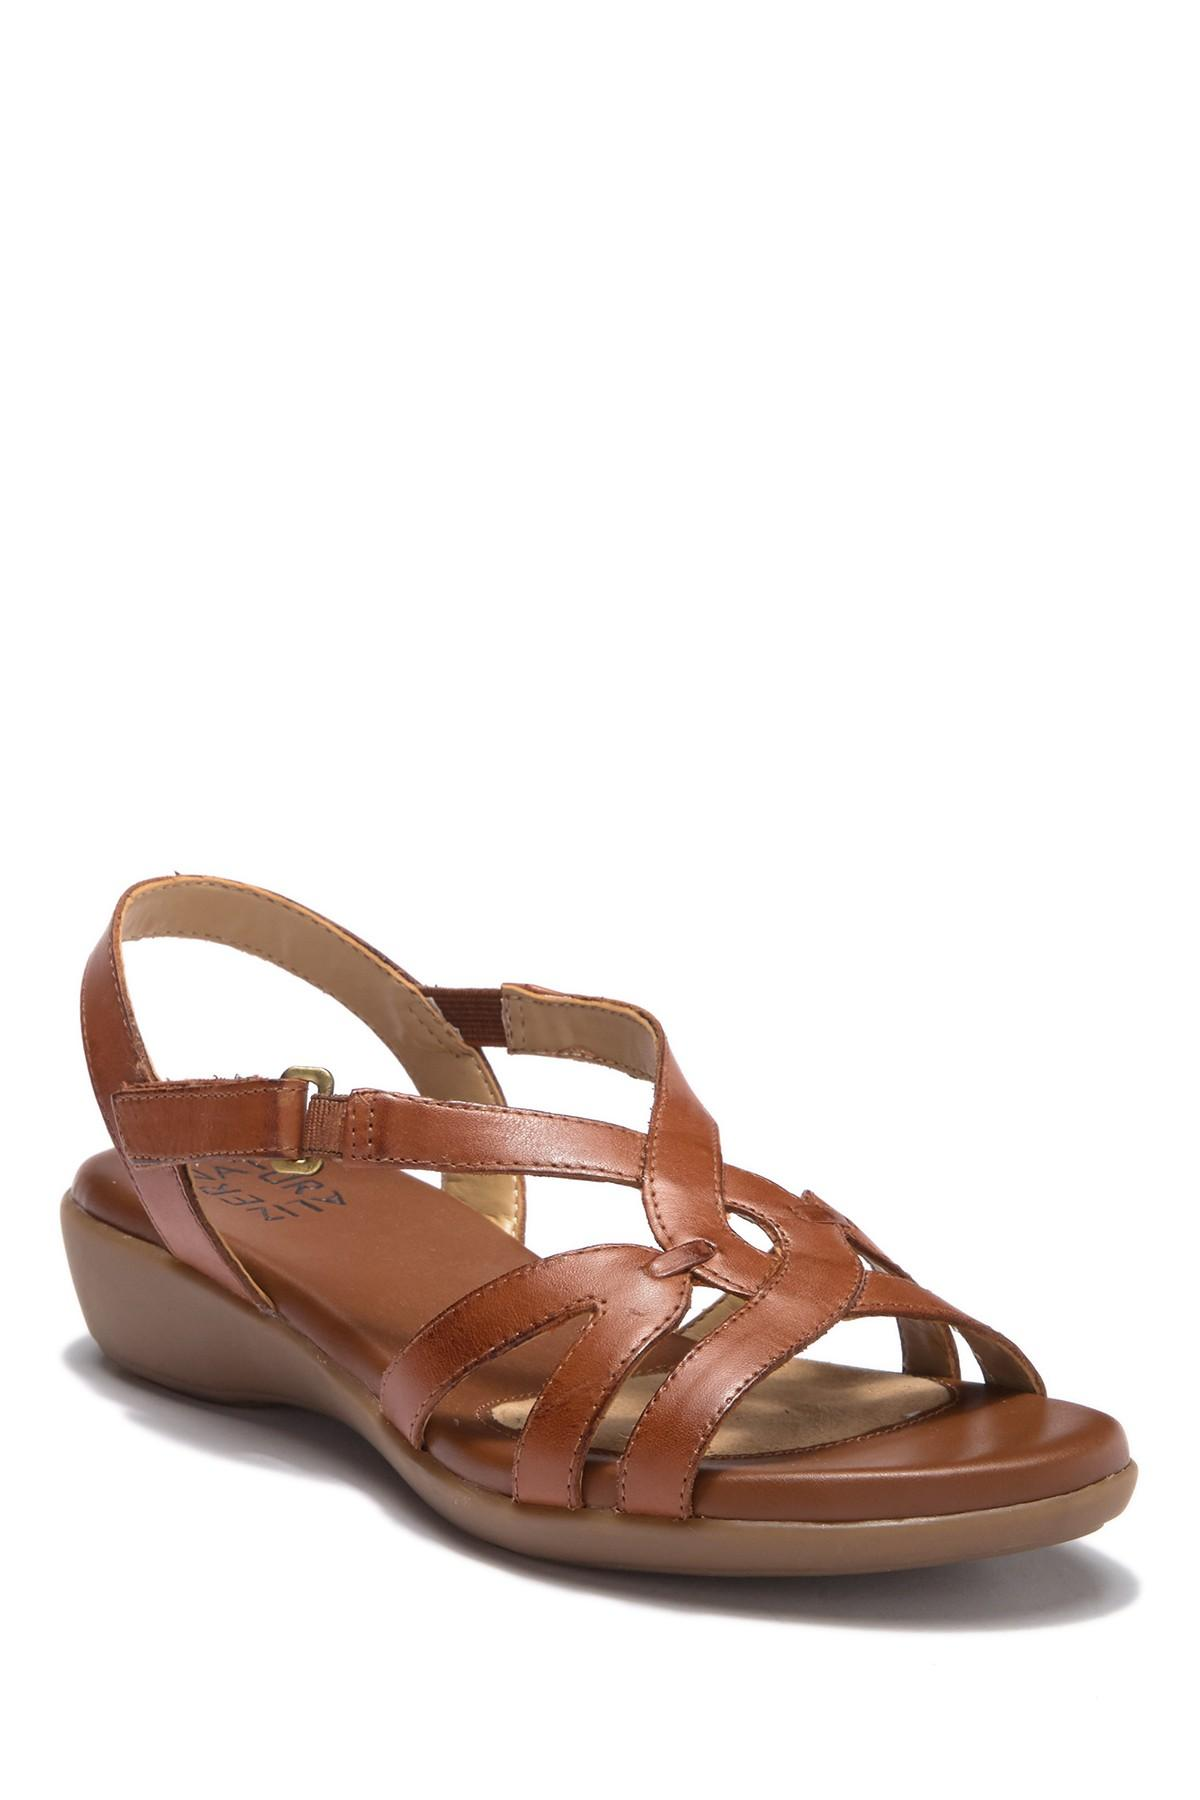 fb8a54ffce3 Lyst - Naturalizer Neo Sandal - Wide Width Available in Brown